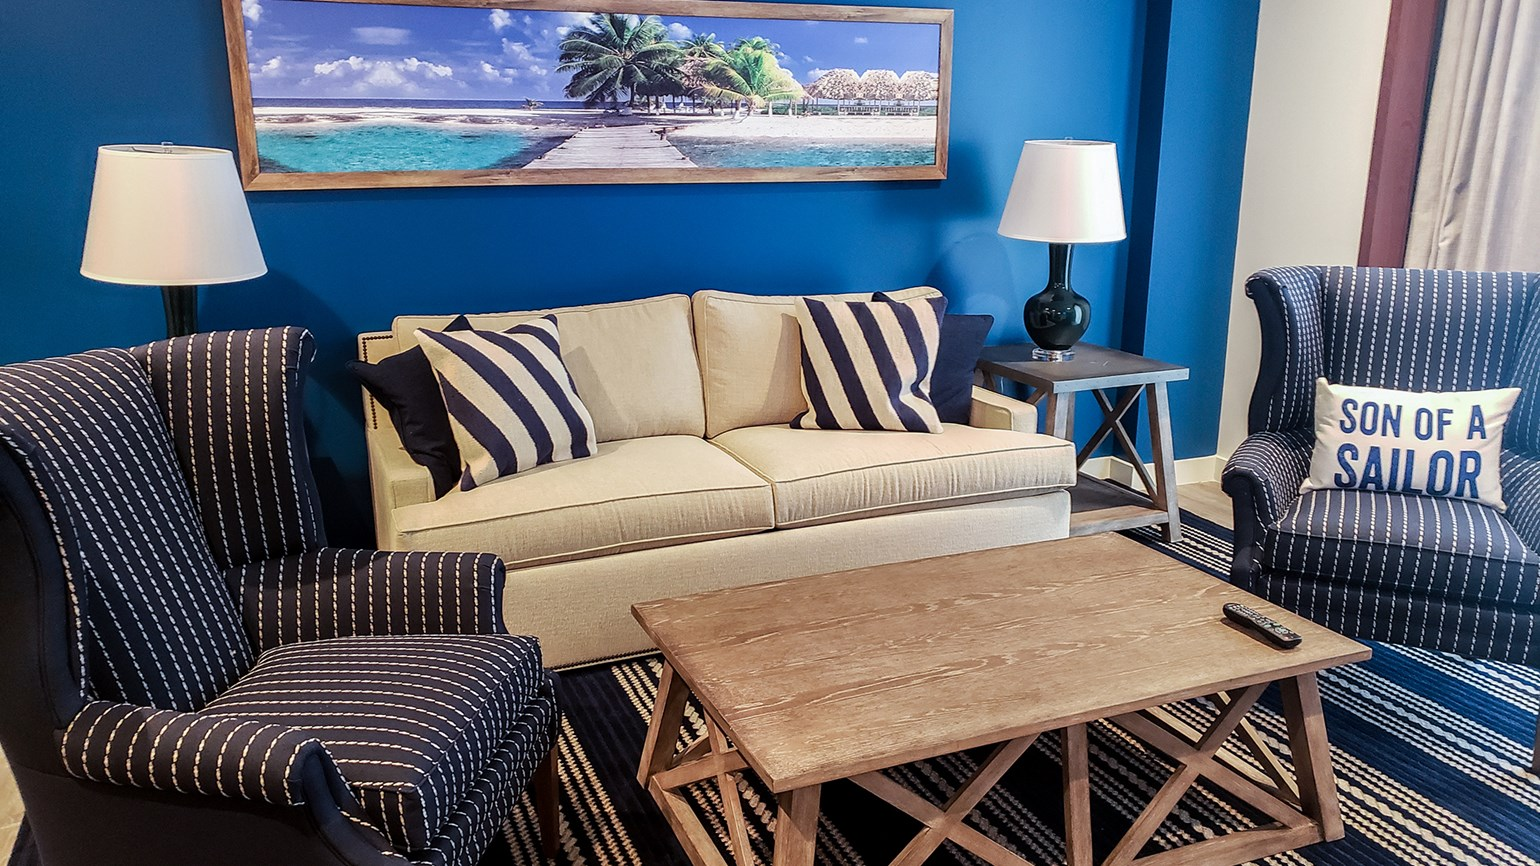 Margaritaville Resort brings island stylin' to Orlando